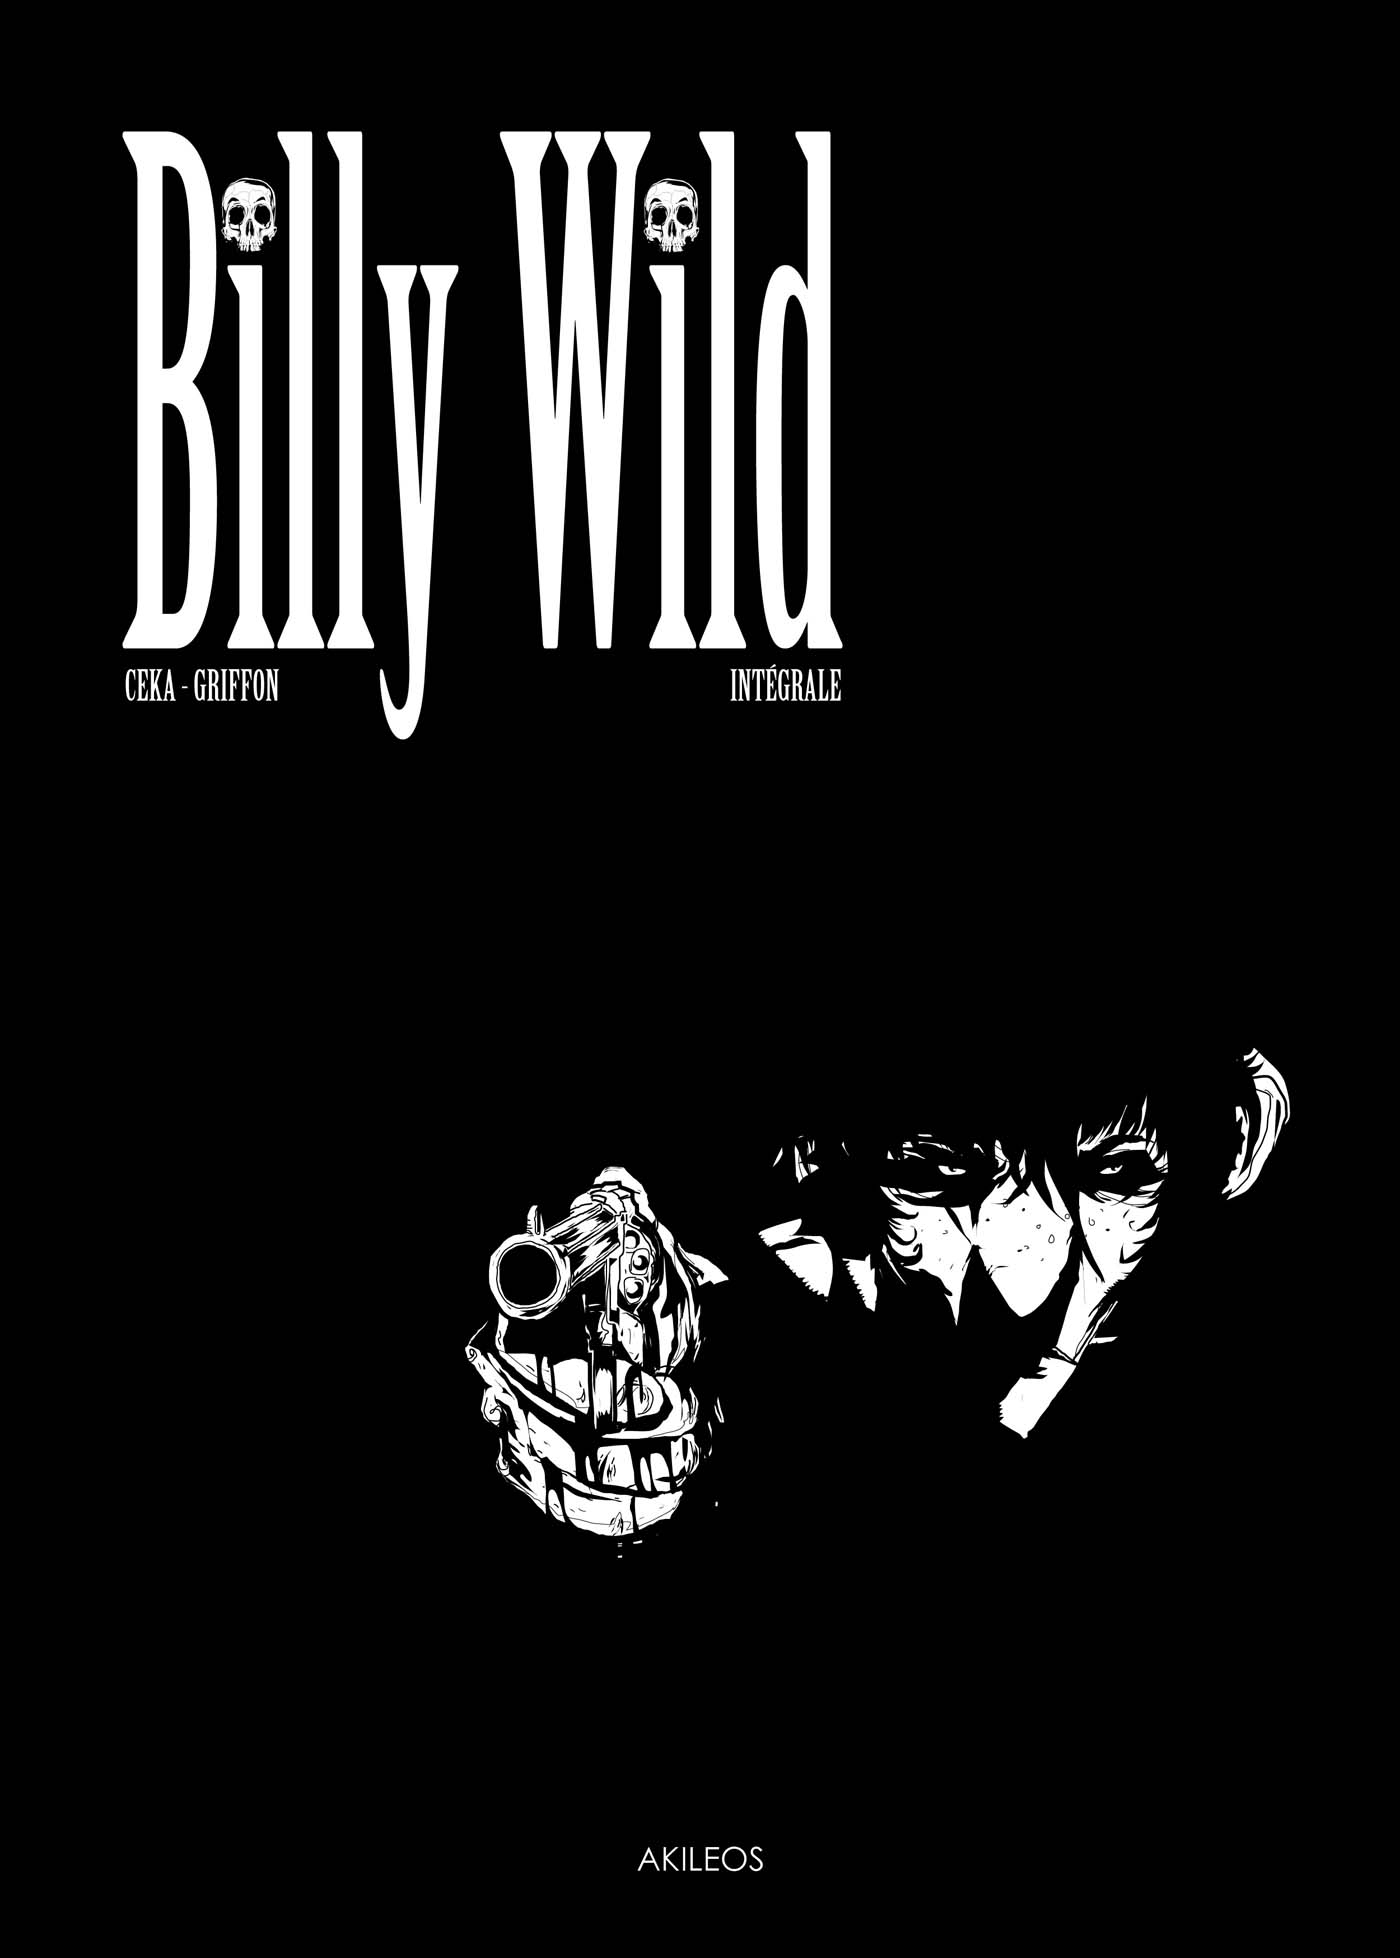 BILLY WILD - INTEGRALE